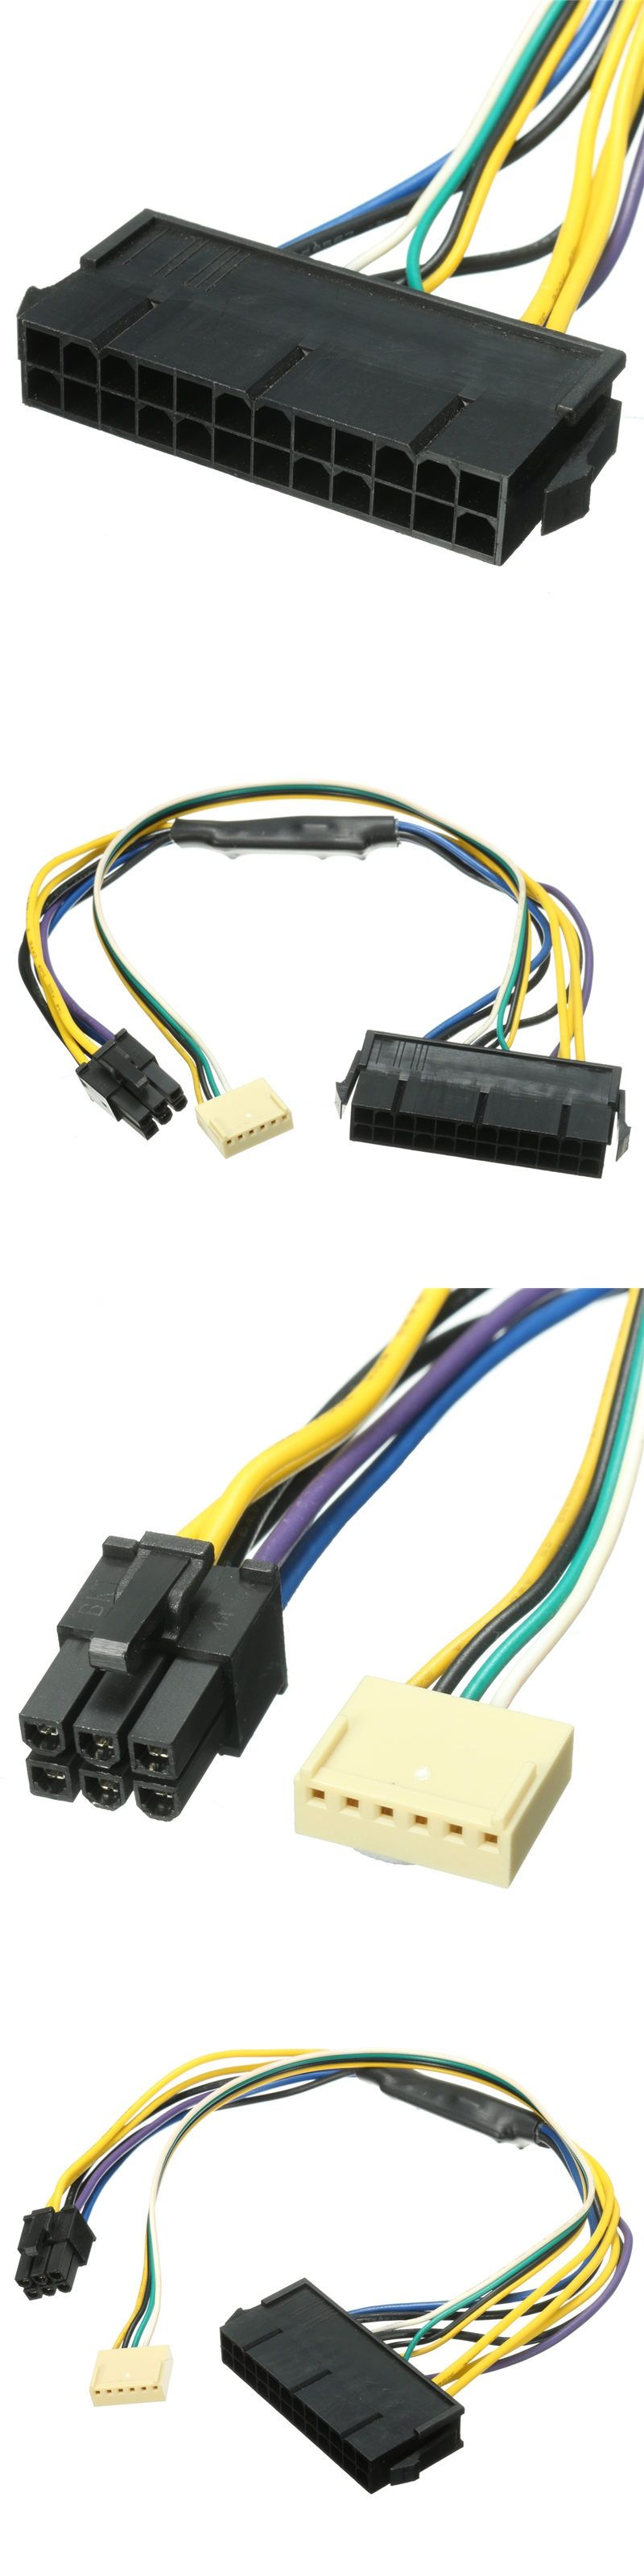 Hp Z220 Z230 Atx Psu Power Cable 30cm Sff Mainboard 24pin To 2 Port Wiring Diagram 6pin 18